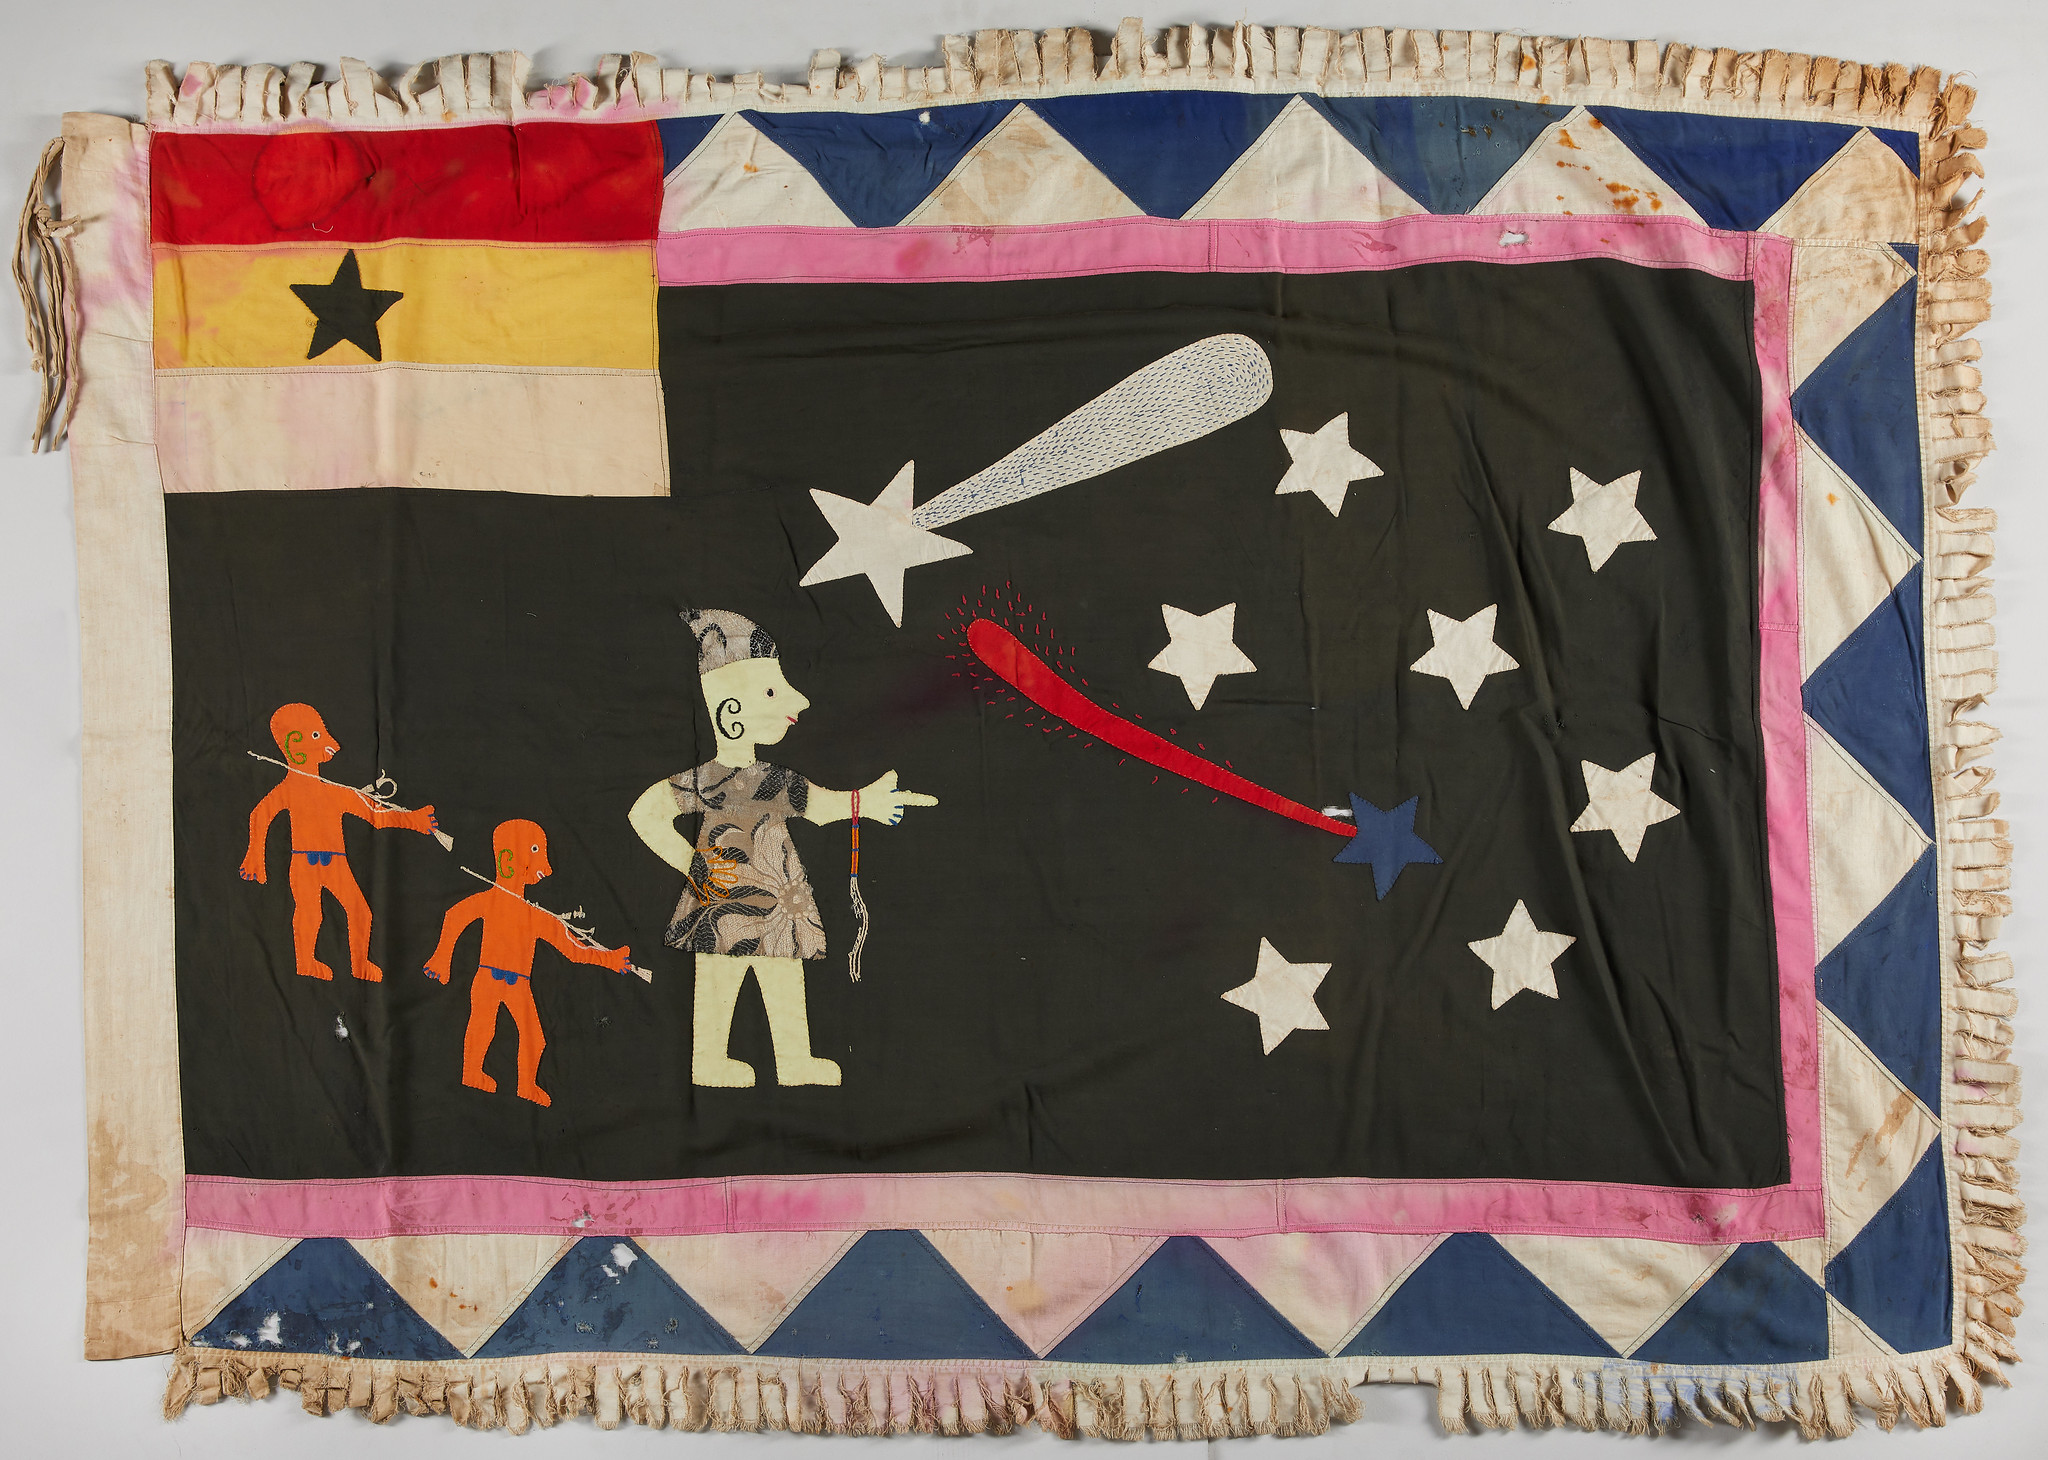 One of the visually stunning flags from the collection, before treatment, 43 x 60.25 inches.